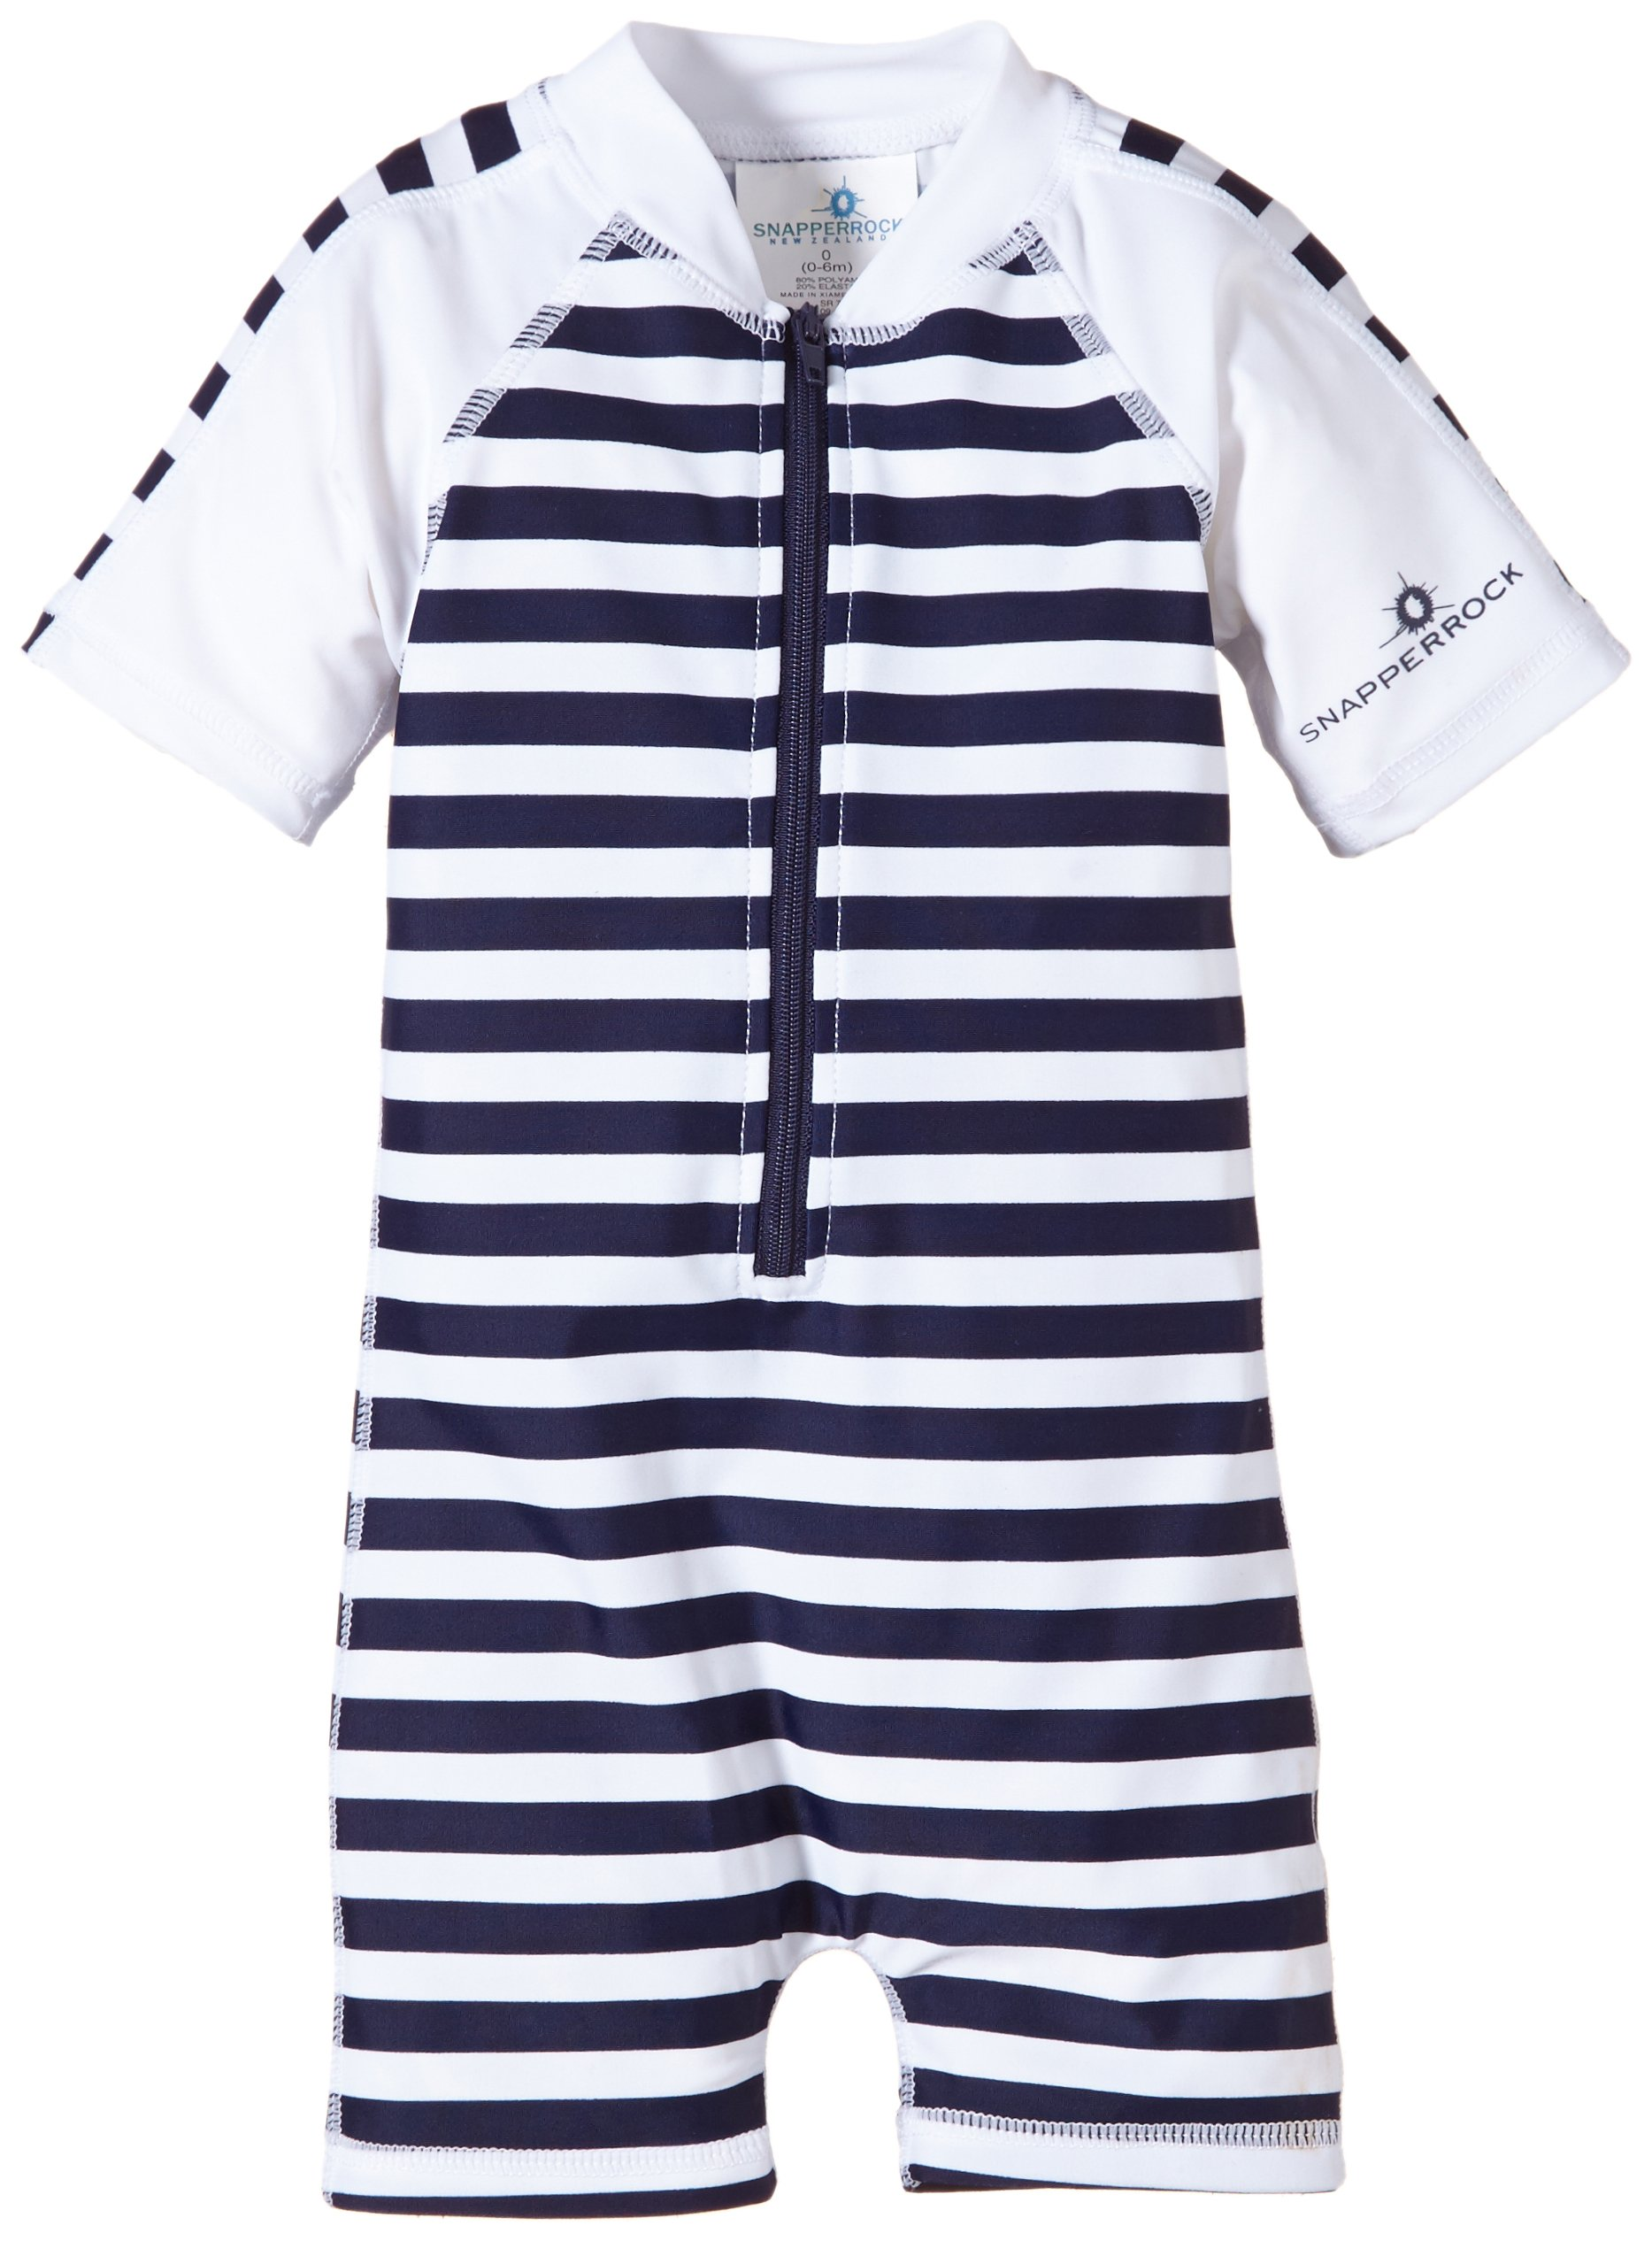 Snapper Rock Baby Boys' Zippered One Piece Short Sleeve Sun Suit, Navy White Stripe, 0 6 Months